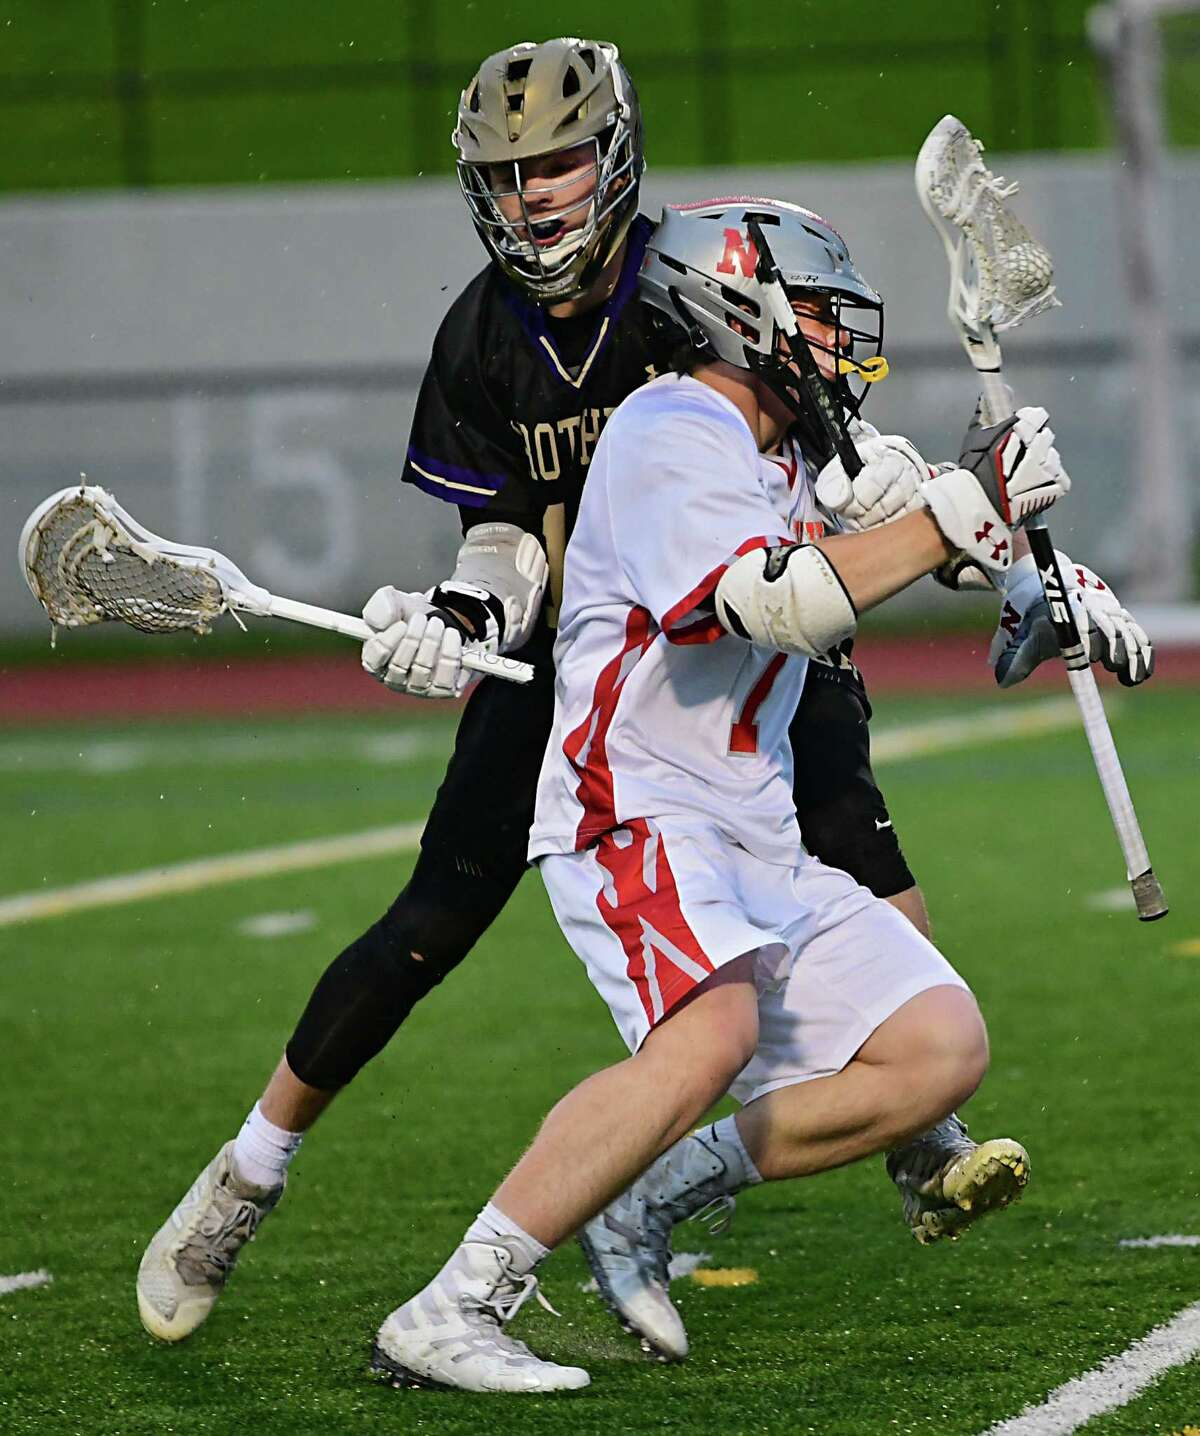 With a broken stick, Christian Brothers Academy's Jon Rollo defends Niskayuna's Gabe Nish during a lacrosse game on Frank Bailey Field at Union College on Tuesday, May 14, 2019 in Schenectady, N.Y. (Lori Van Buren/Times Union)